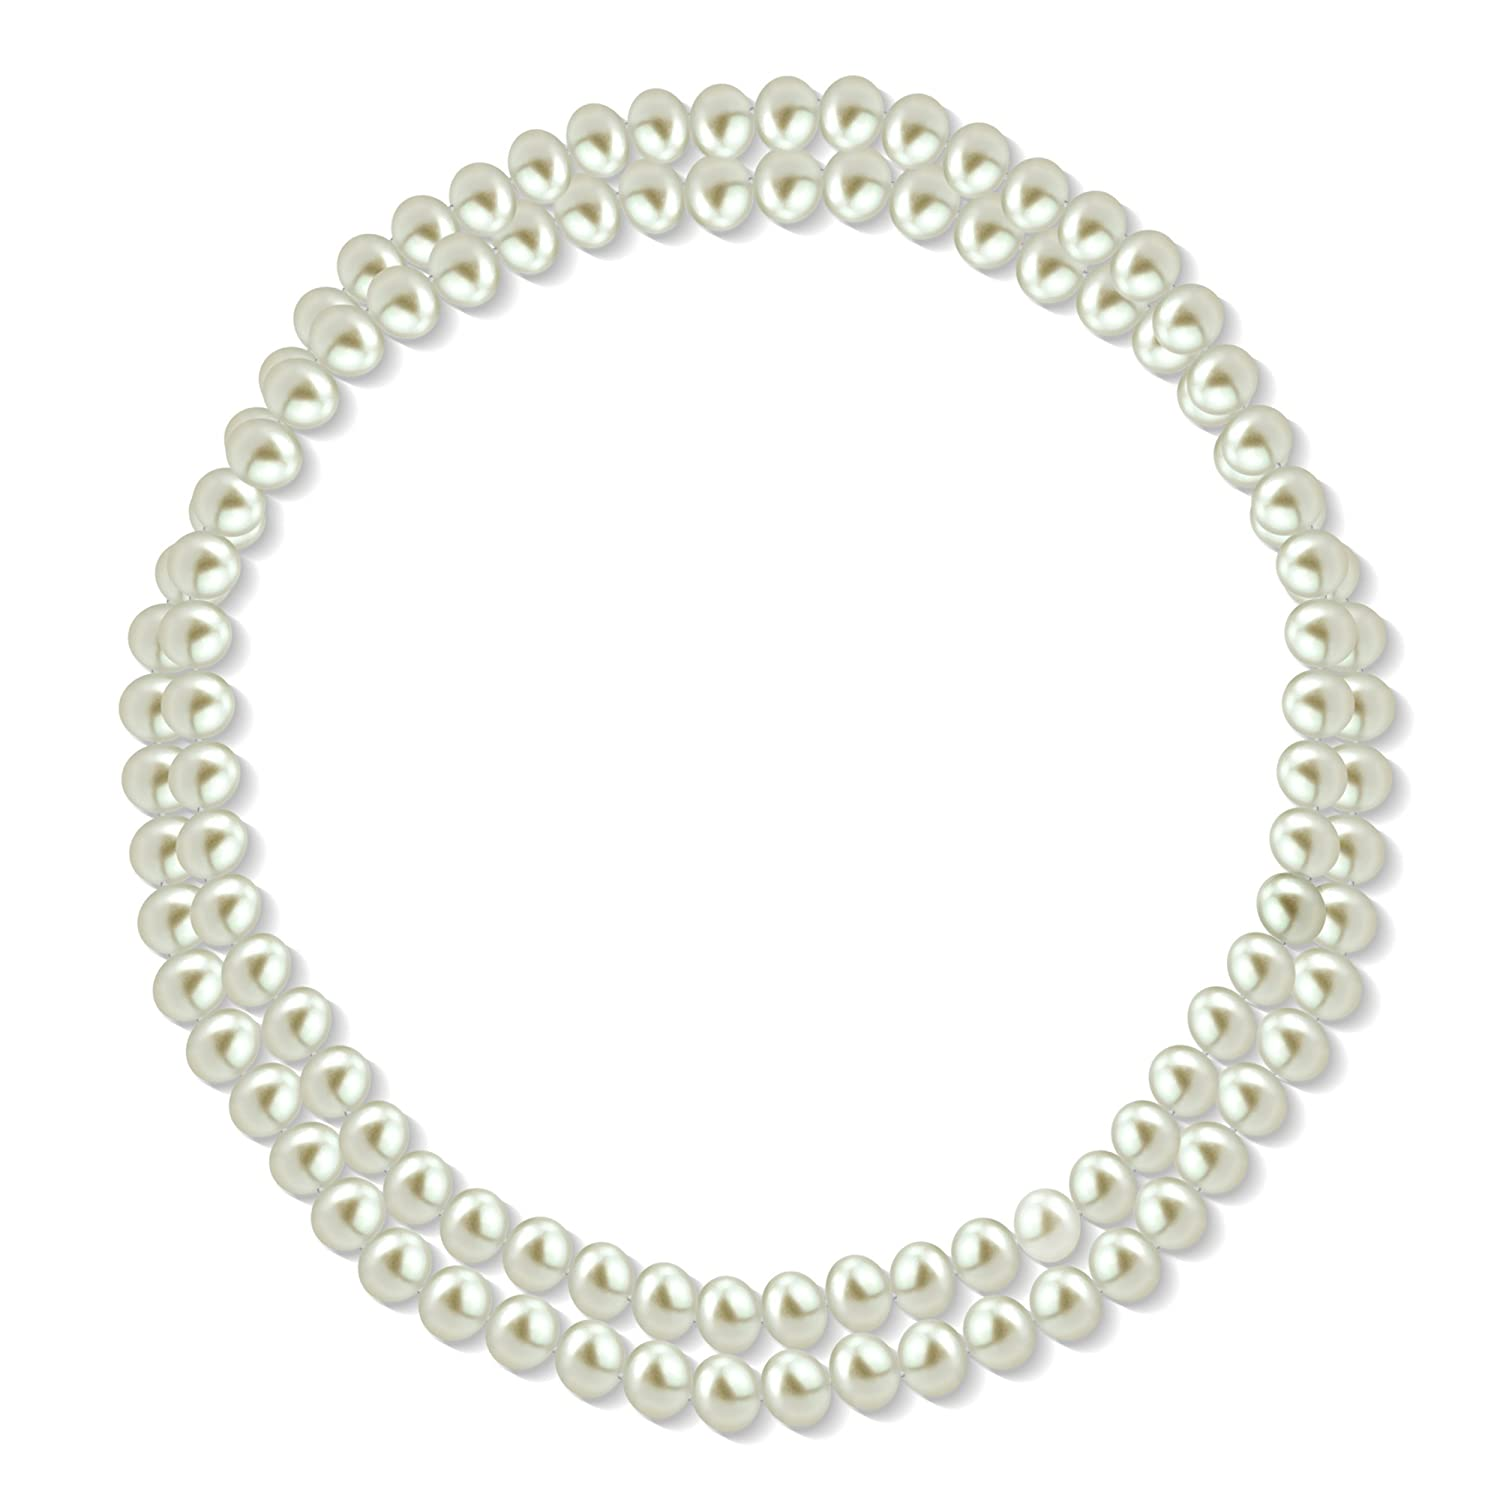 """10-10.5mm White Freshwater Cultured High Luster Pearl Endless Necklace, 36"""""""